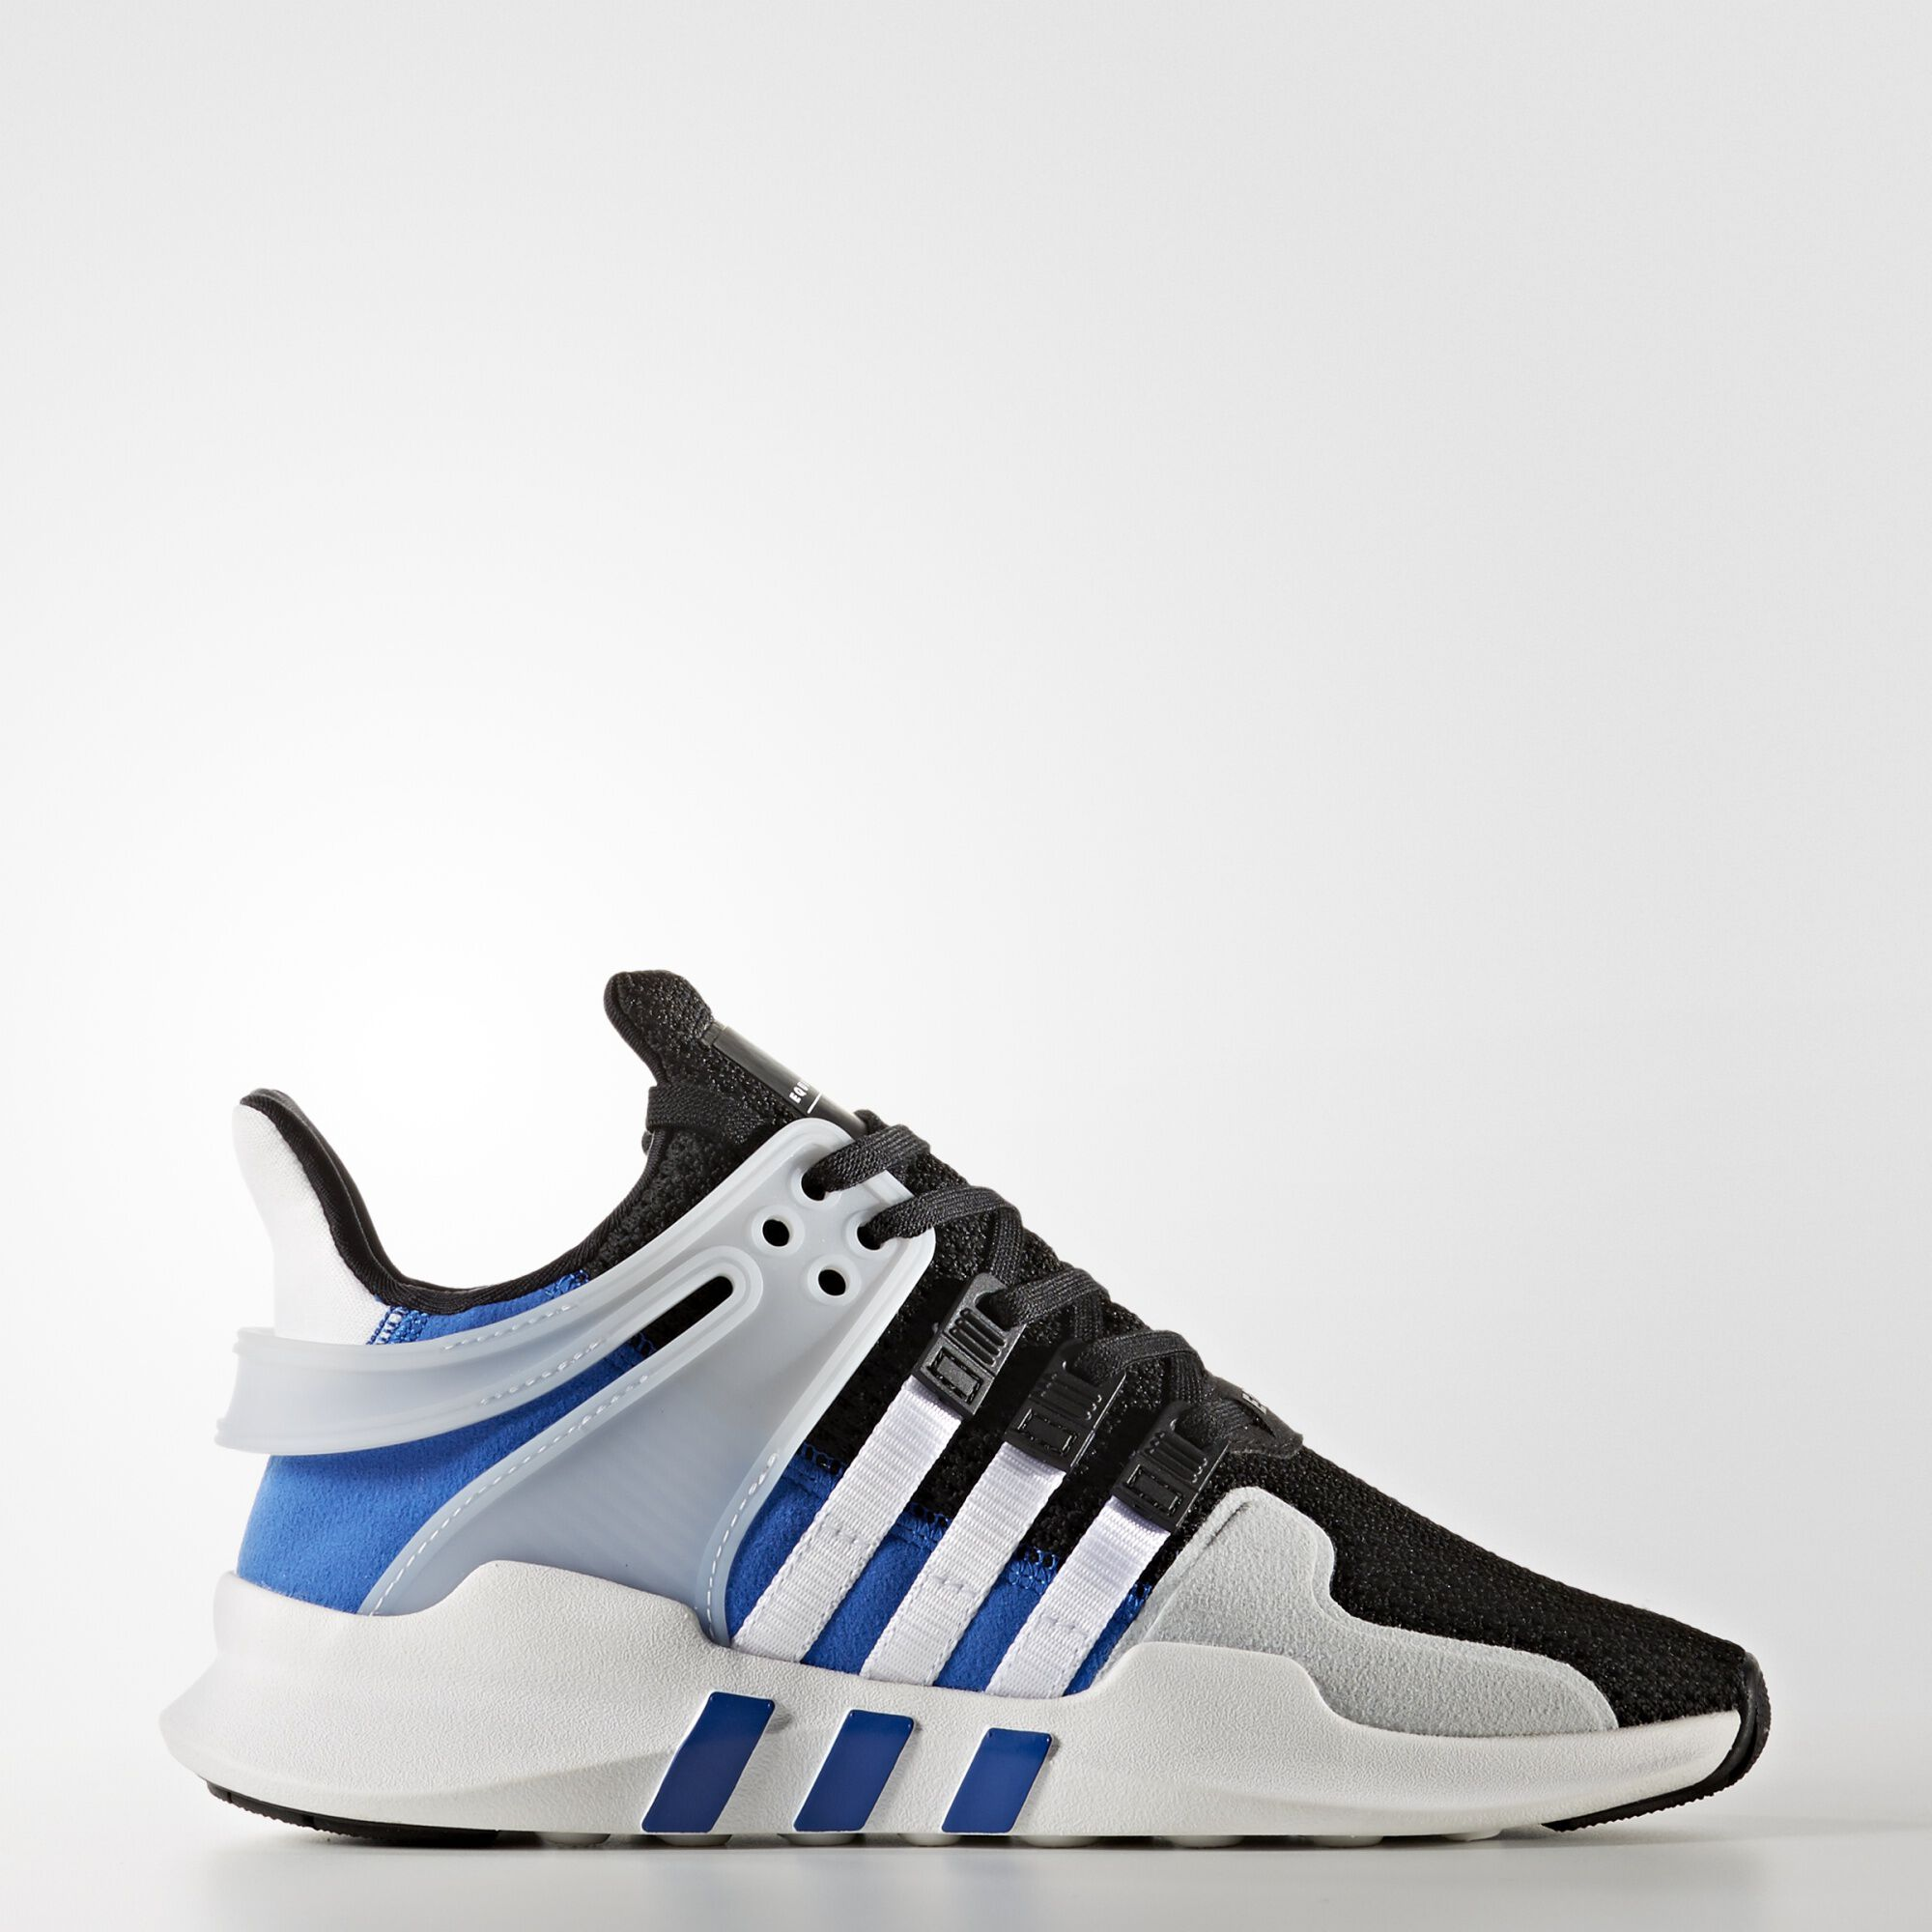 25fc40e263e2 ... adidas - EQT Support ADV Shoes Core Black   Running White   Blue BY9867  ...